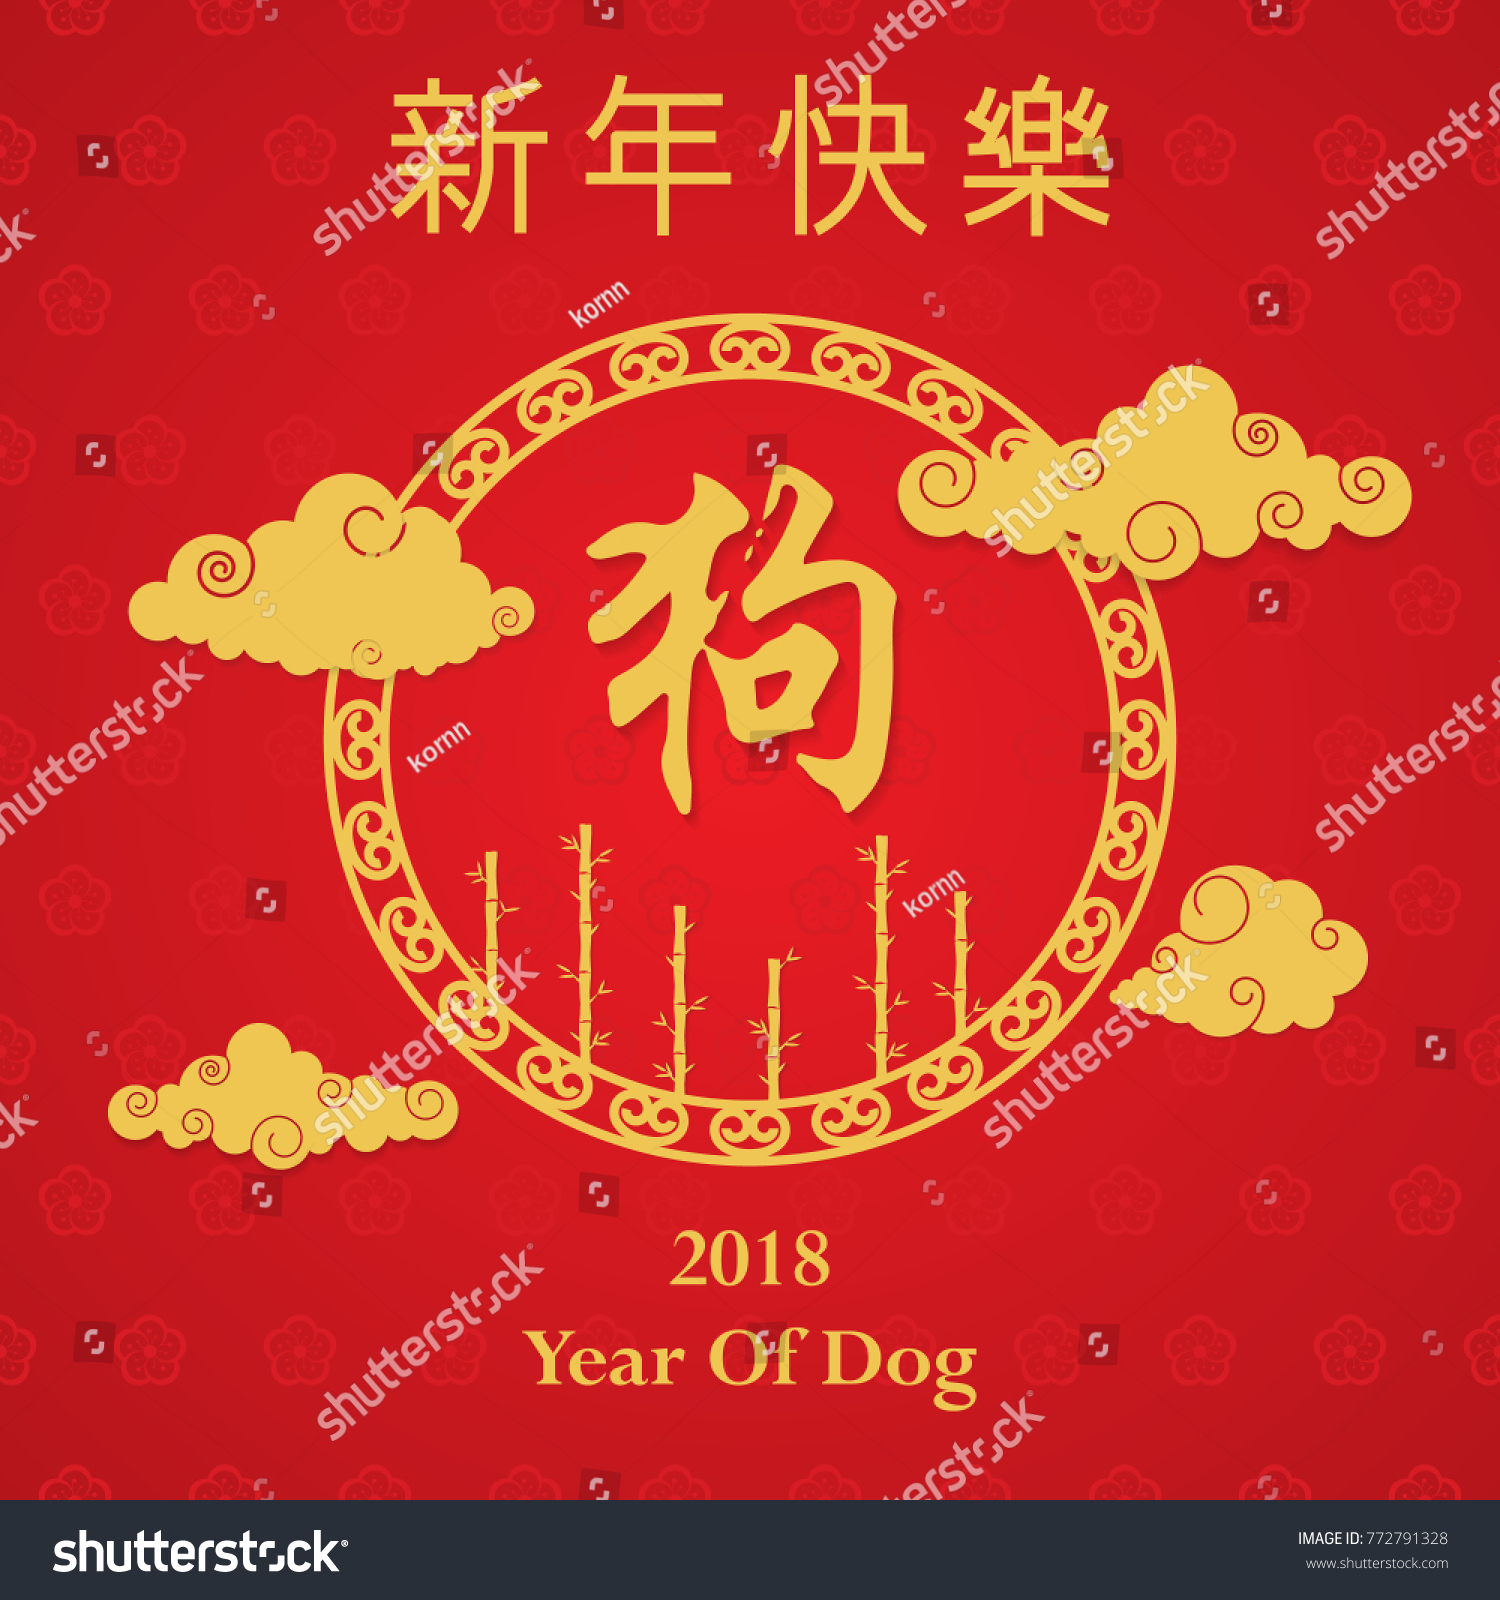 chinese new year 2018 year of dog vector design chinese translation year of dog prosperity ez canvas